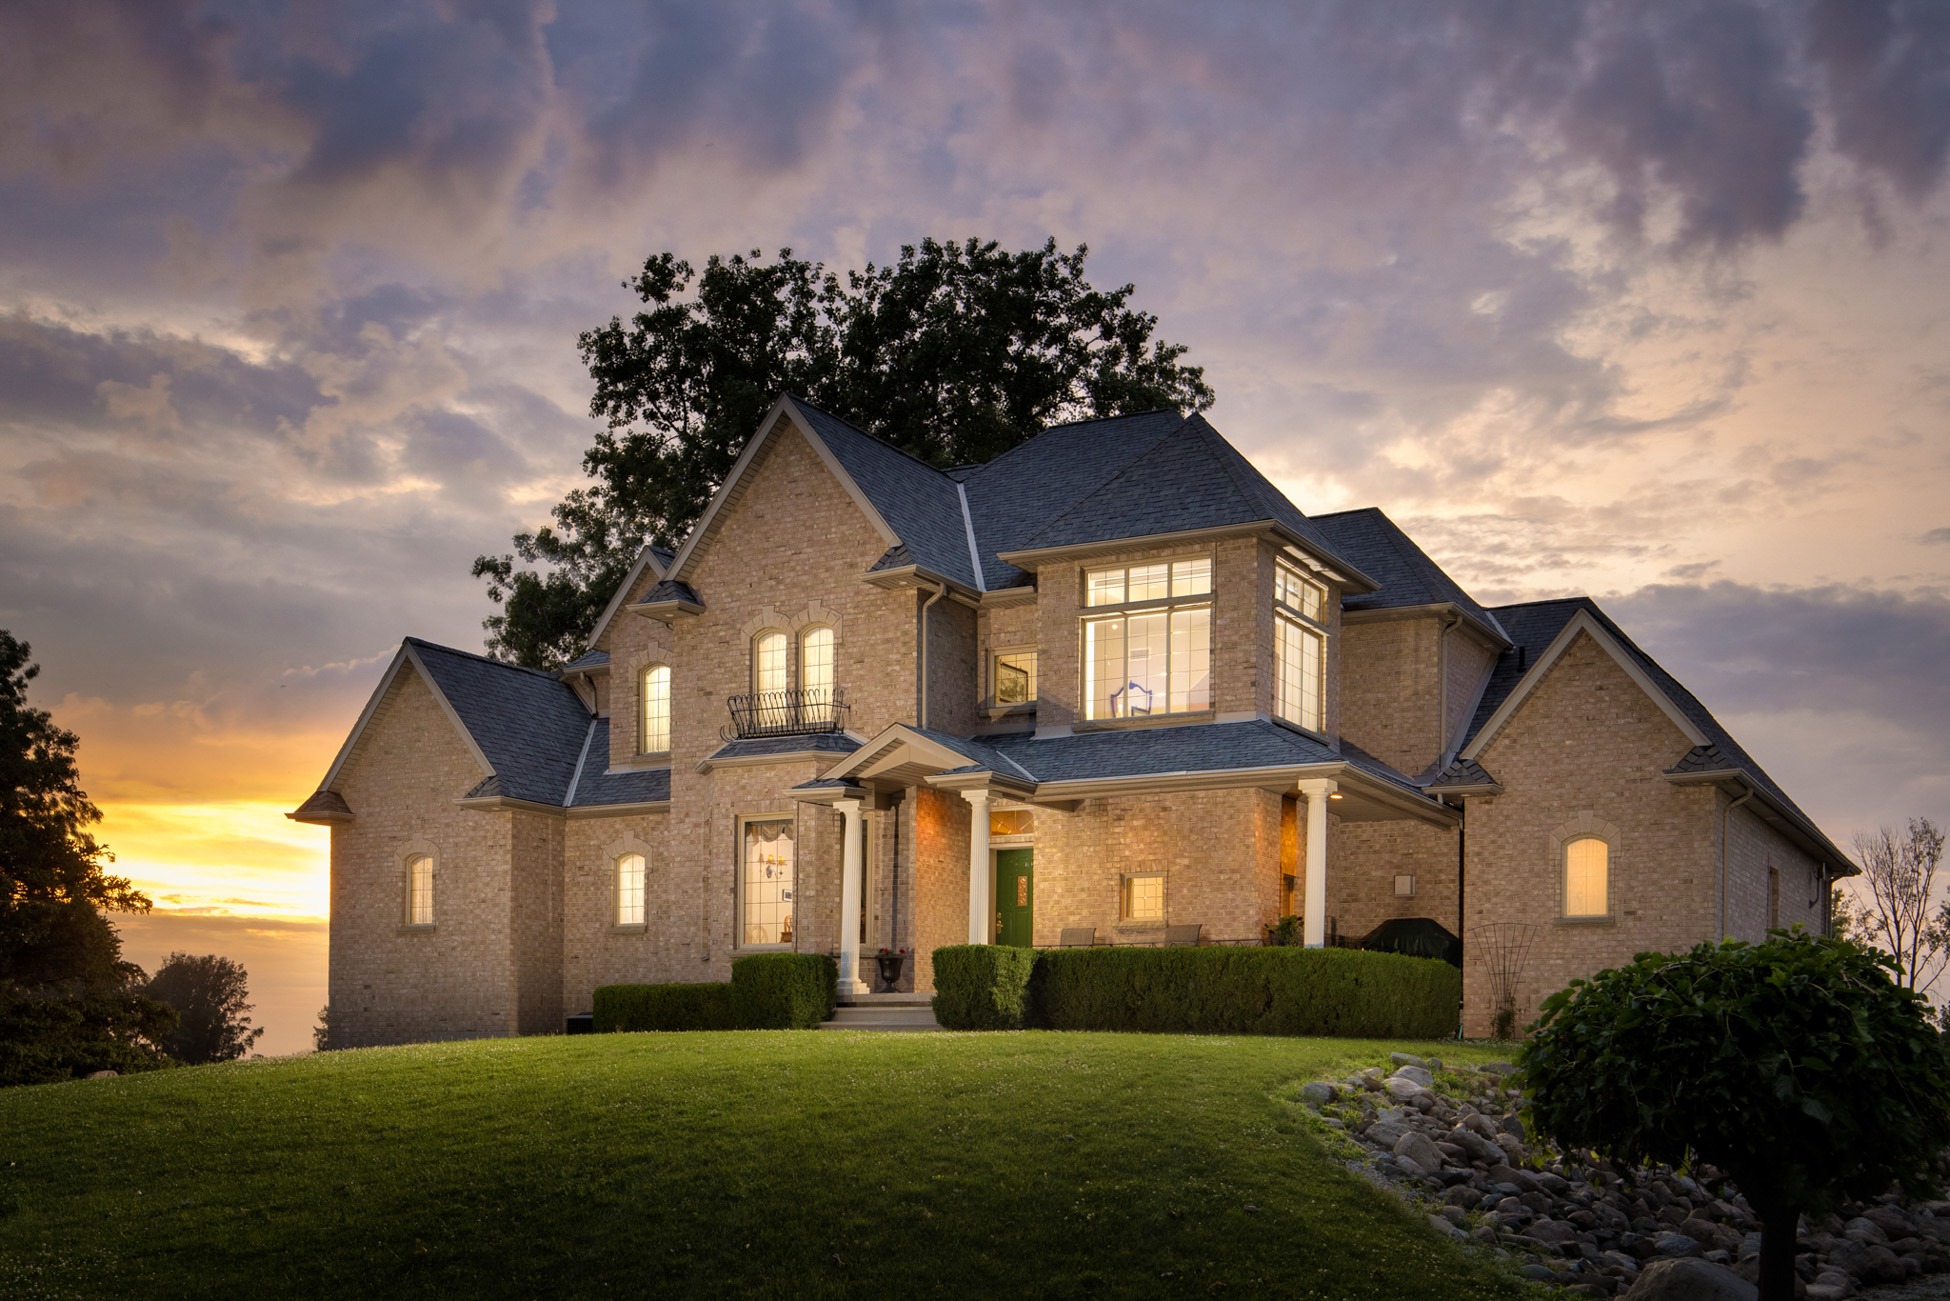 Twilight photo of house front exterior sitting on a small hill, warm lights coming from the windows